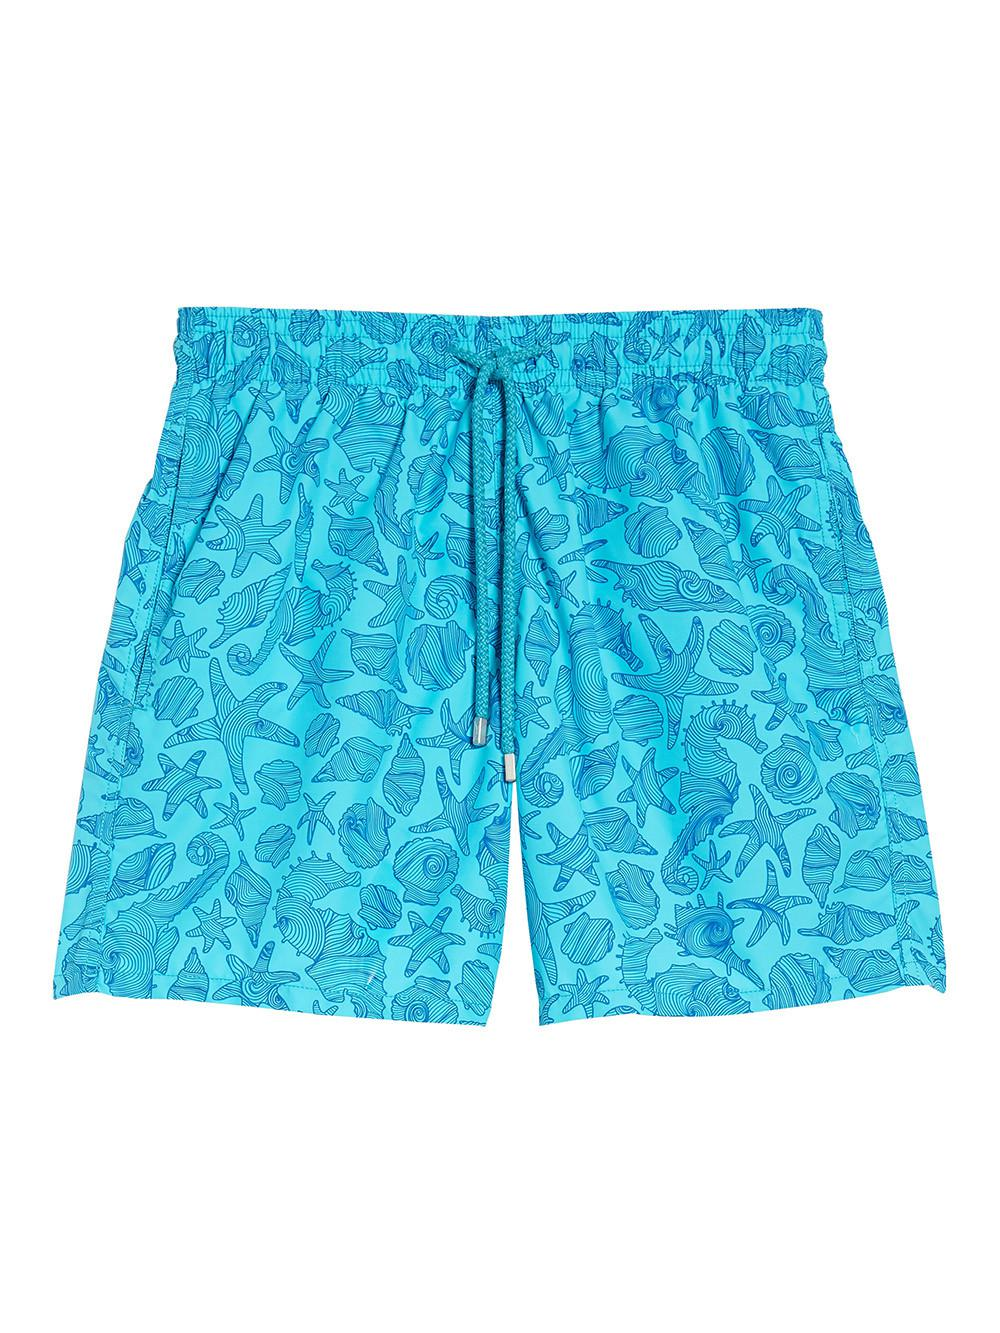 50aa6a7f59 Lyst - Vilebrequin Seahorse Print Swimming Trunks in Blue for Men